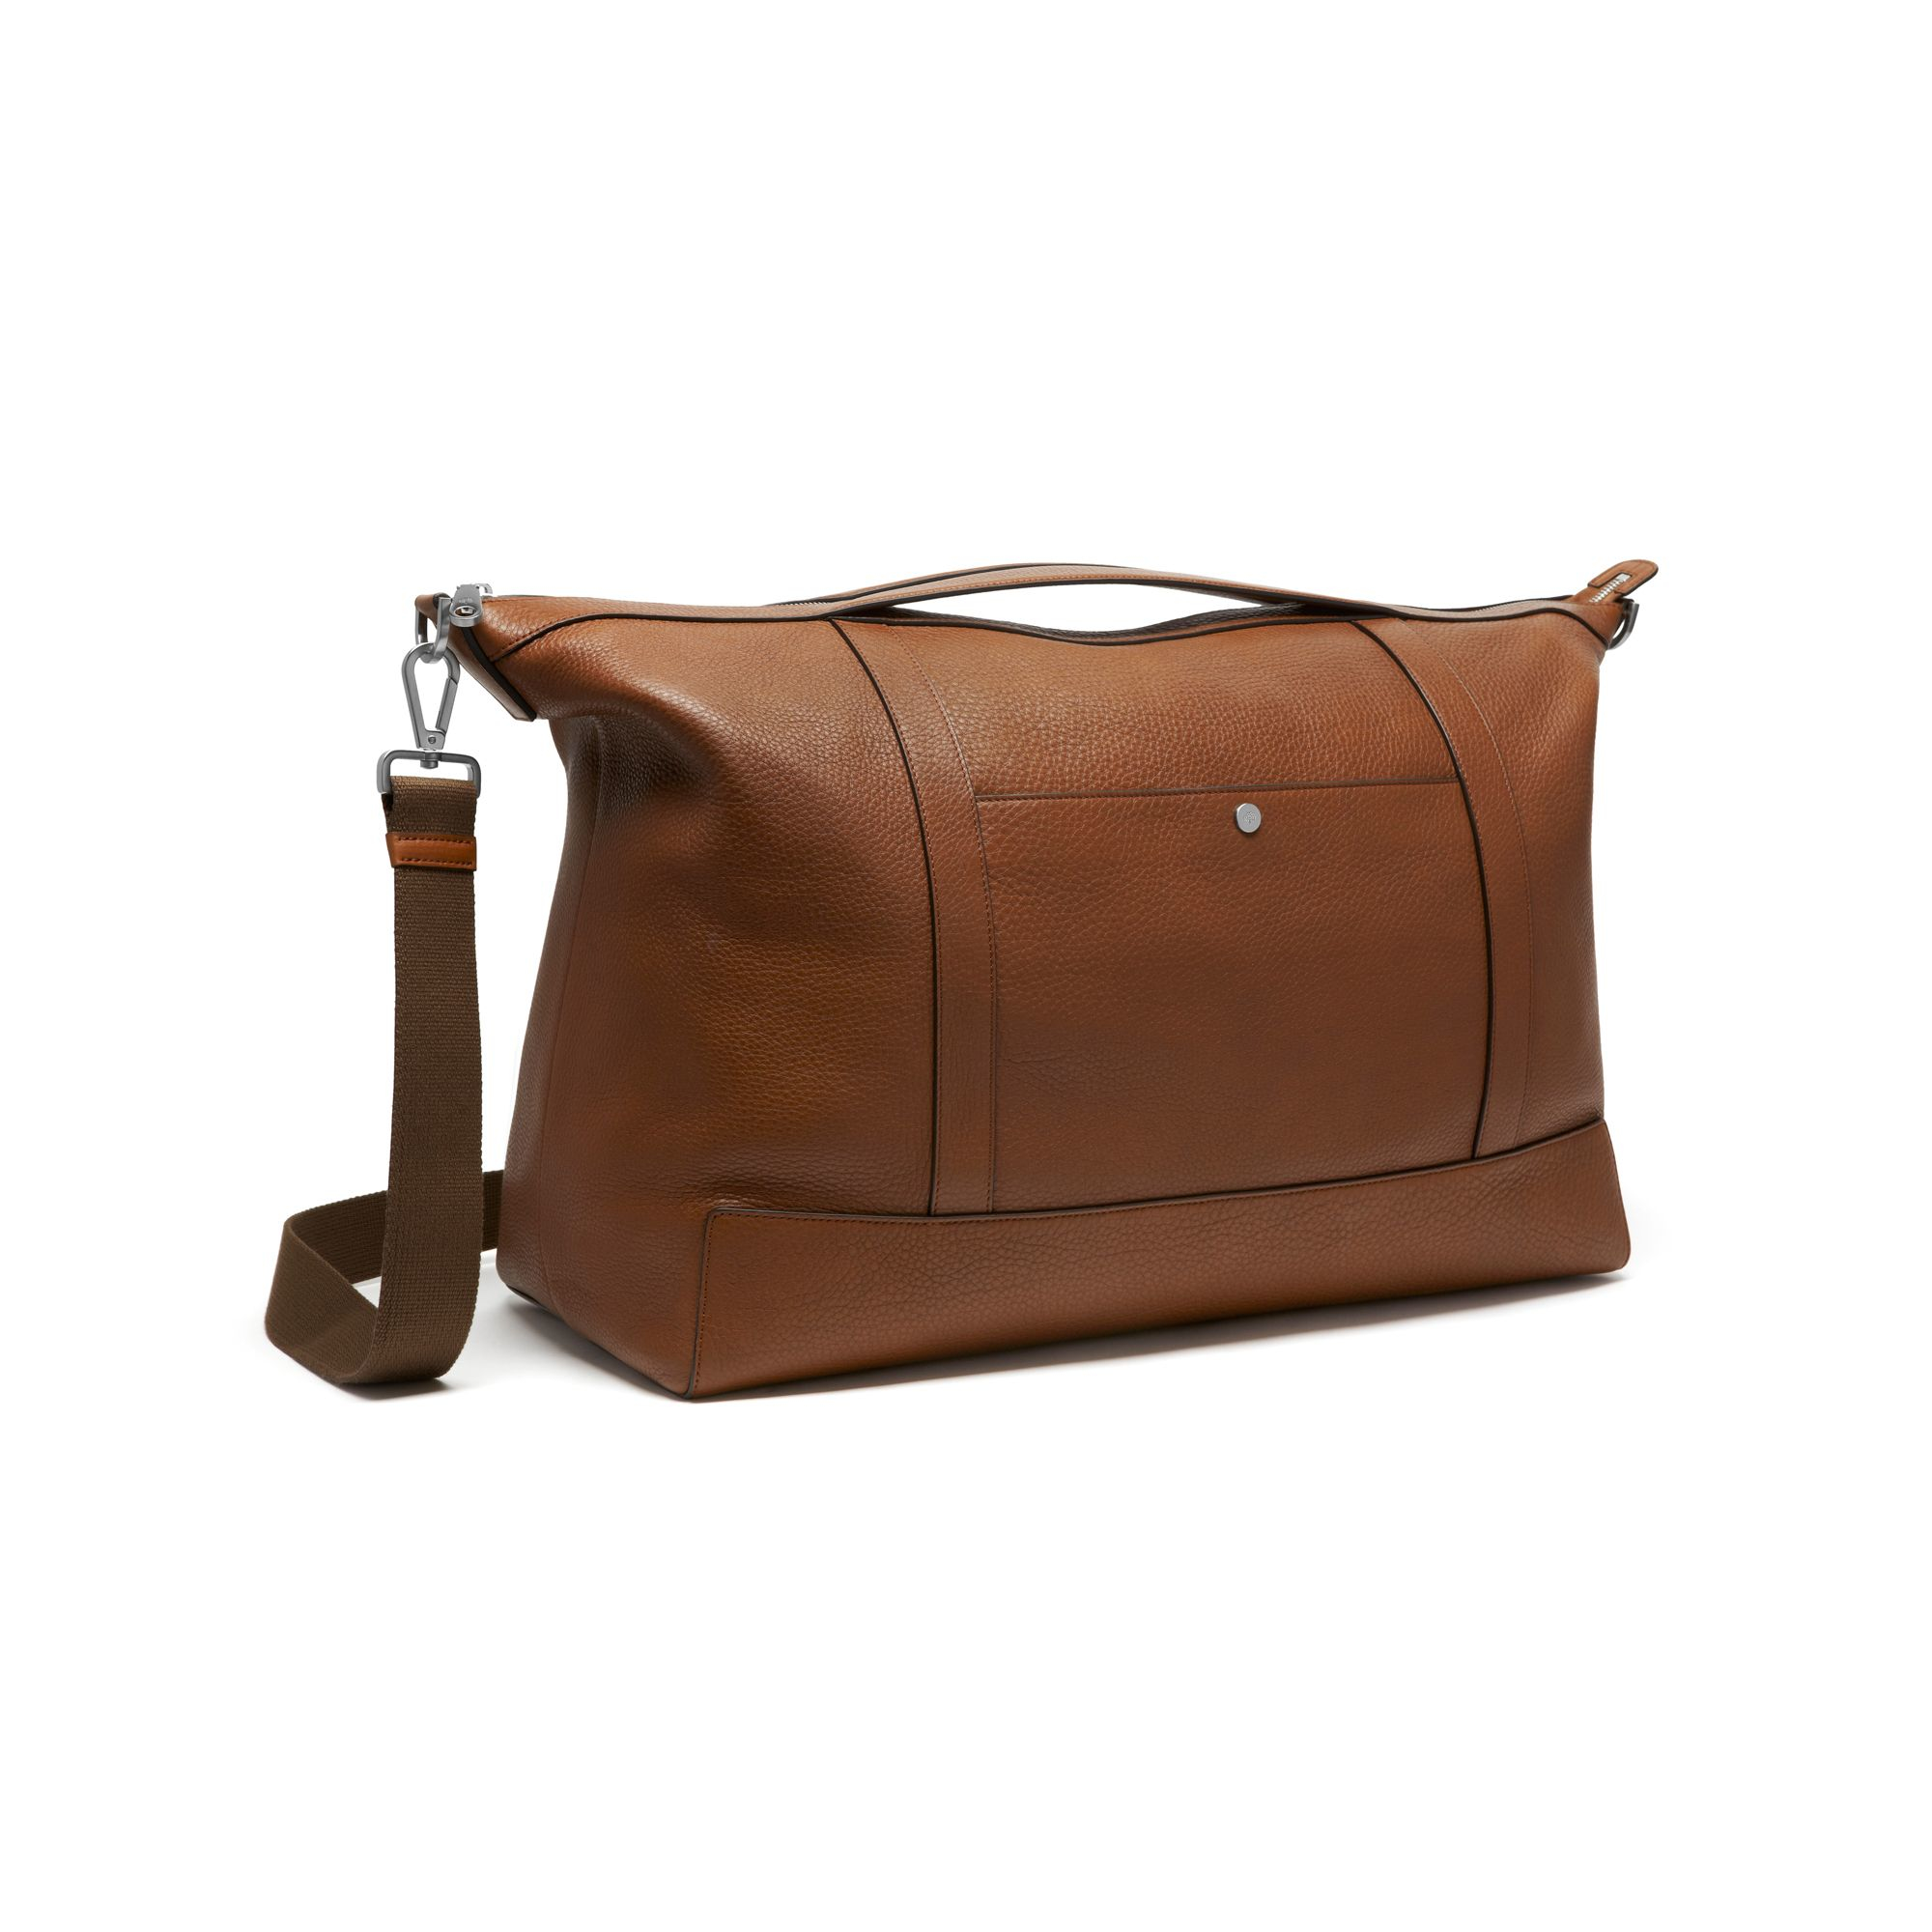 119ed68a90c0 ... discount code for inexpensive mulberry large multitasker holdall in  brown for men lyst 2db65 ef8dd 484d1